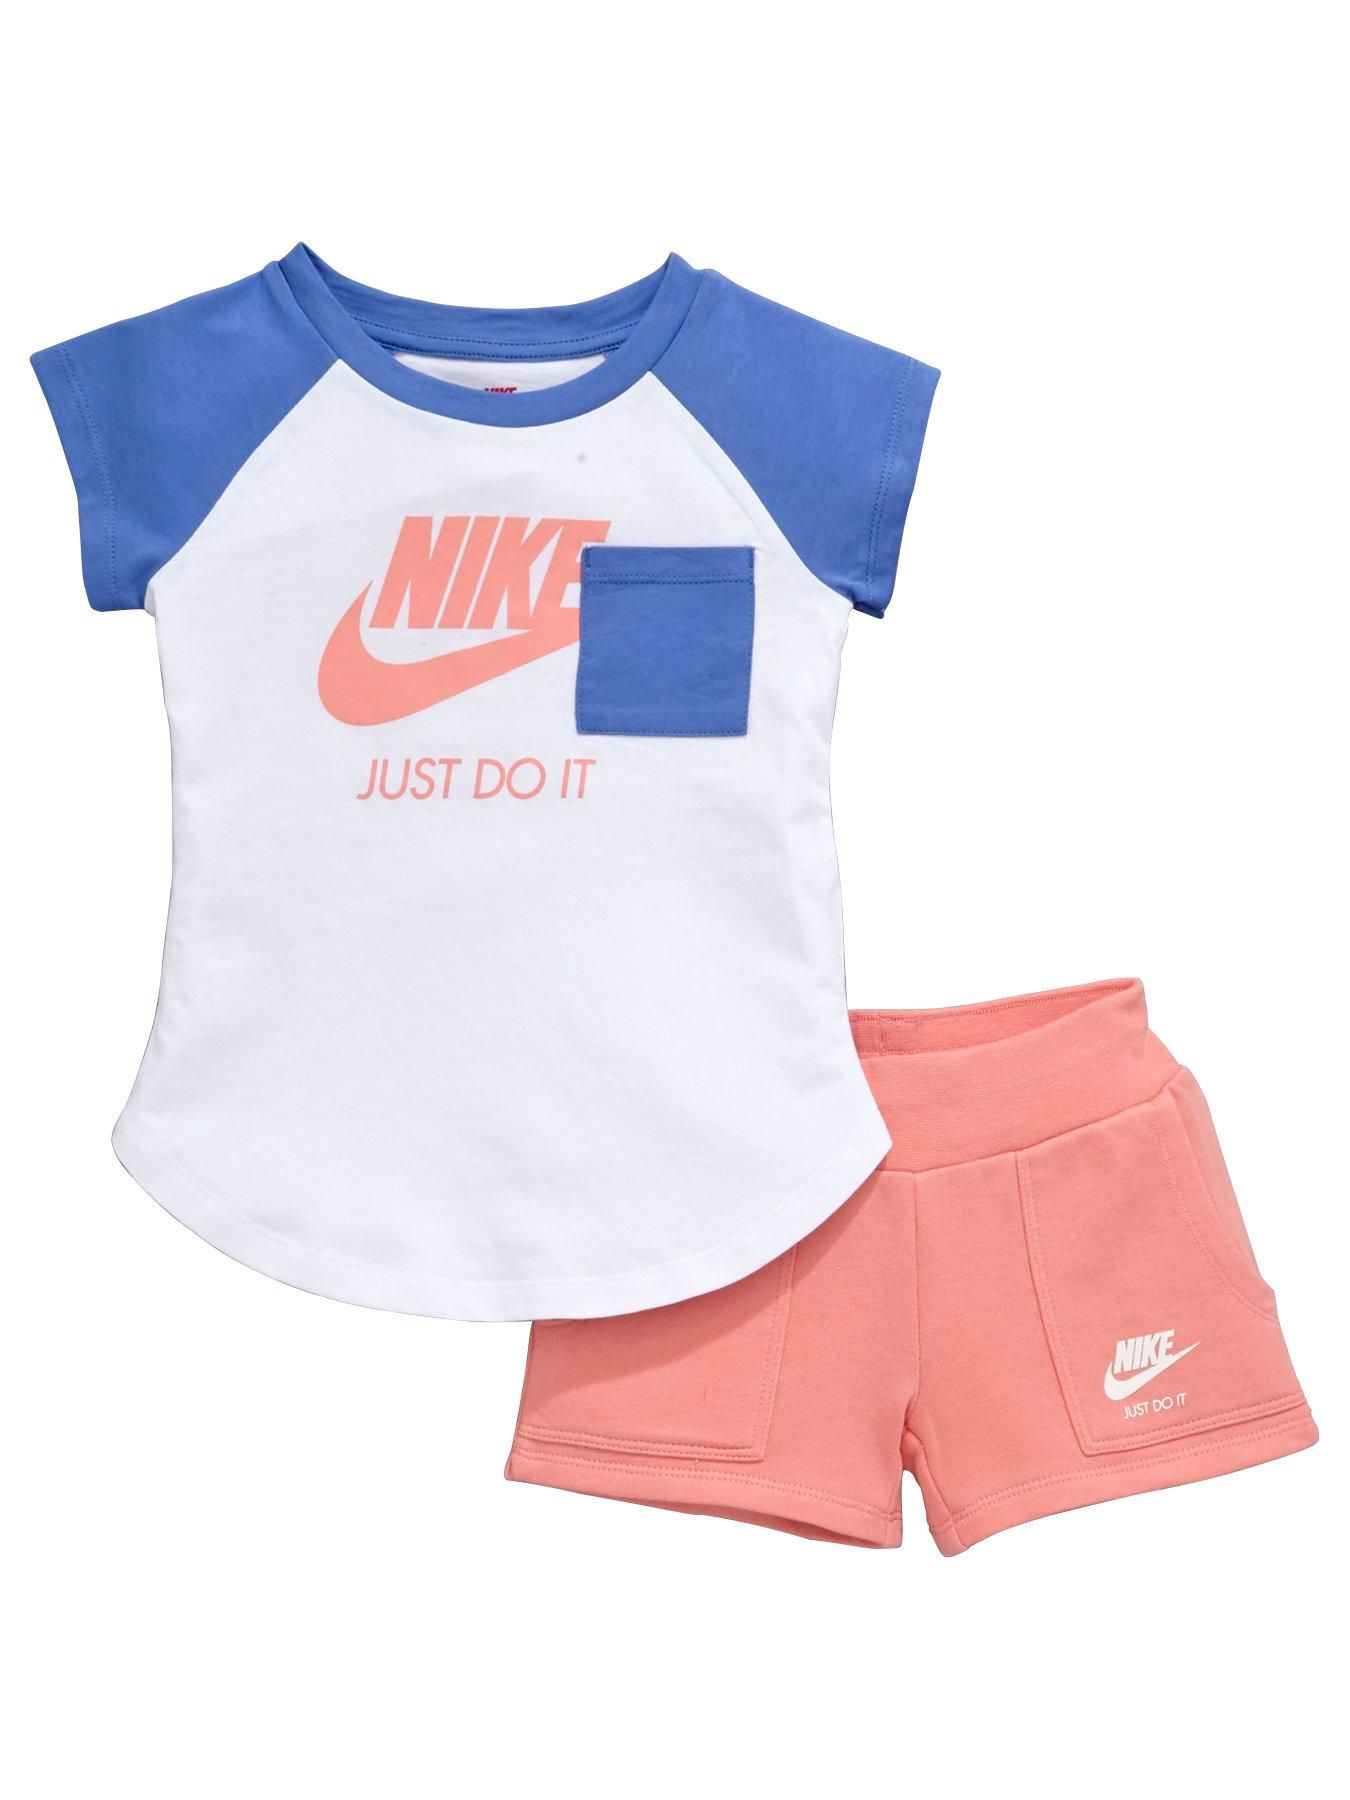 Nike Baby Girl Clothes Inspiration Washing Instructions Machine Washable100% Cotton  Littlewood 2018